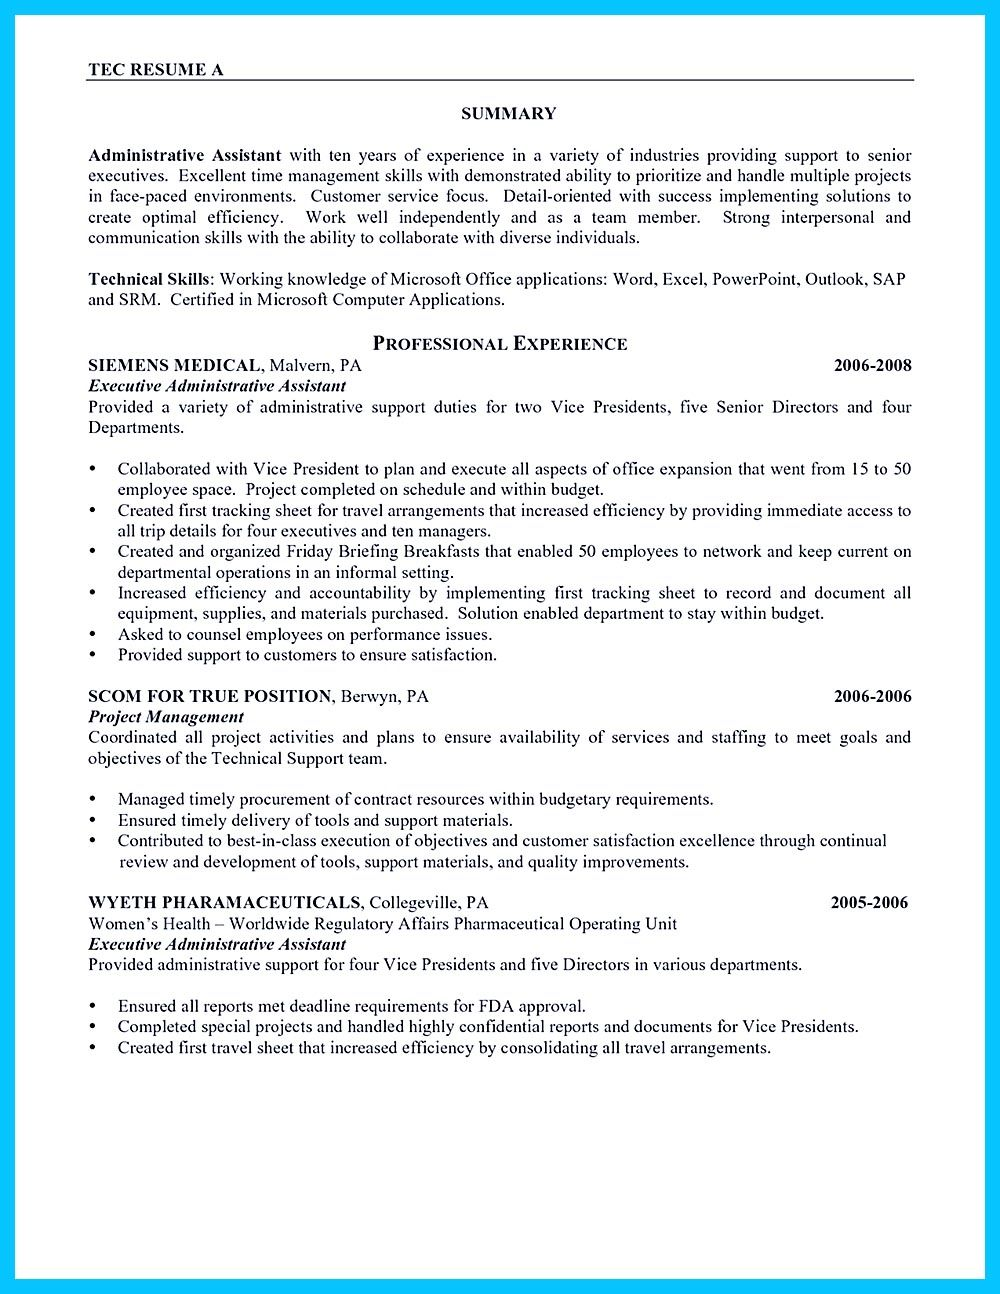 Entry Level Administrative Assistant Resume Endearing In Writing Entry Level Administrative Assistant Resume You Need To .